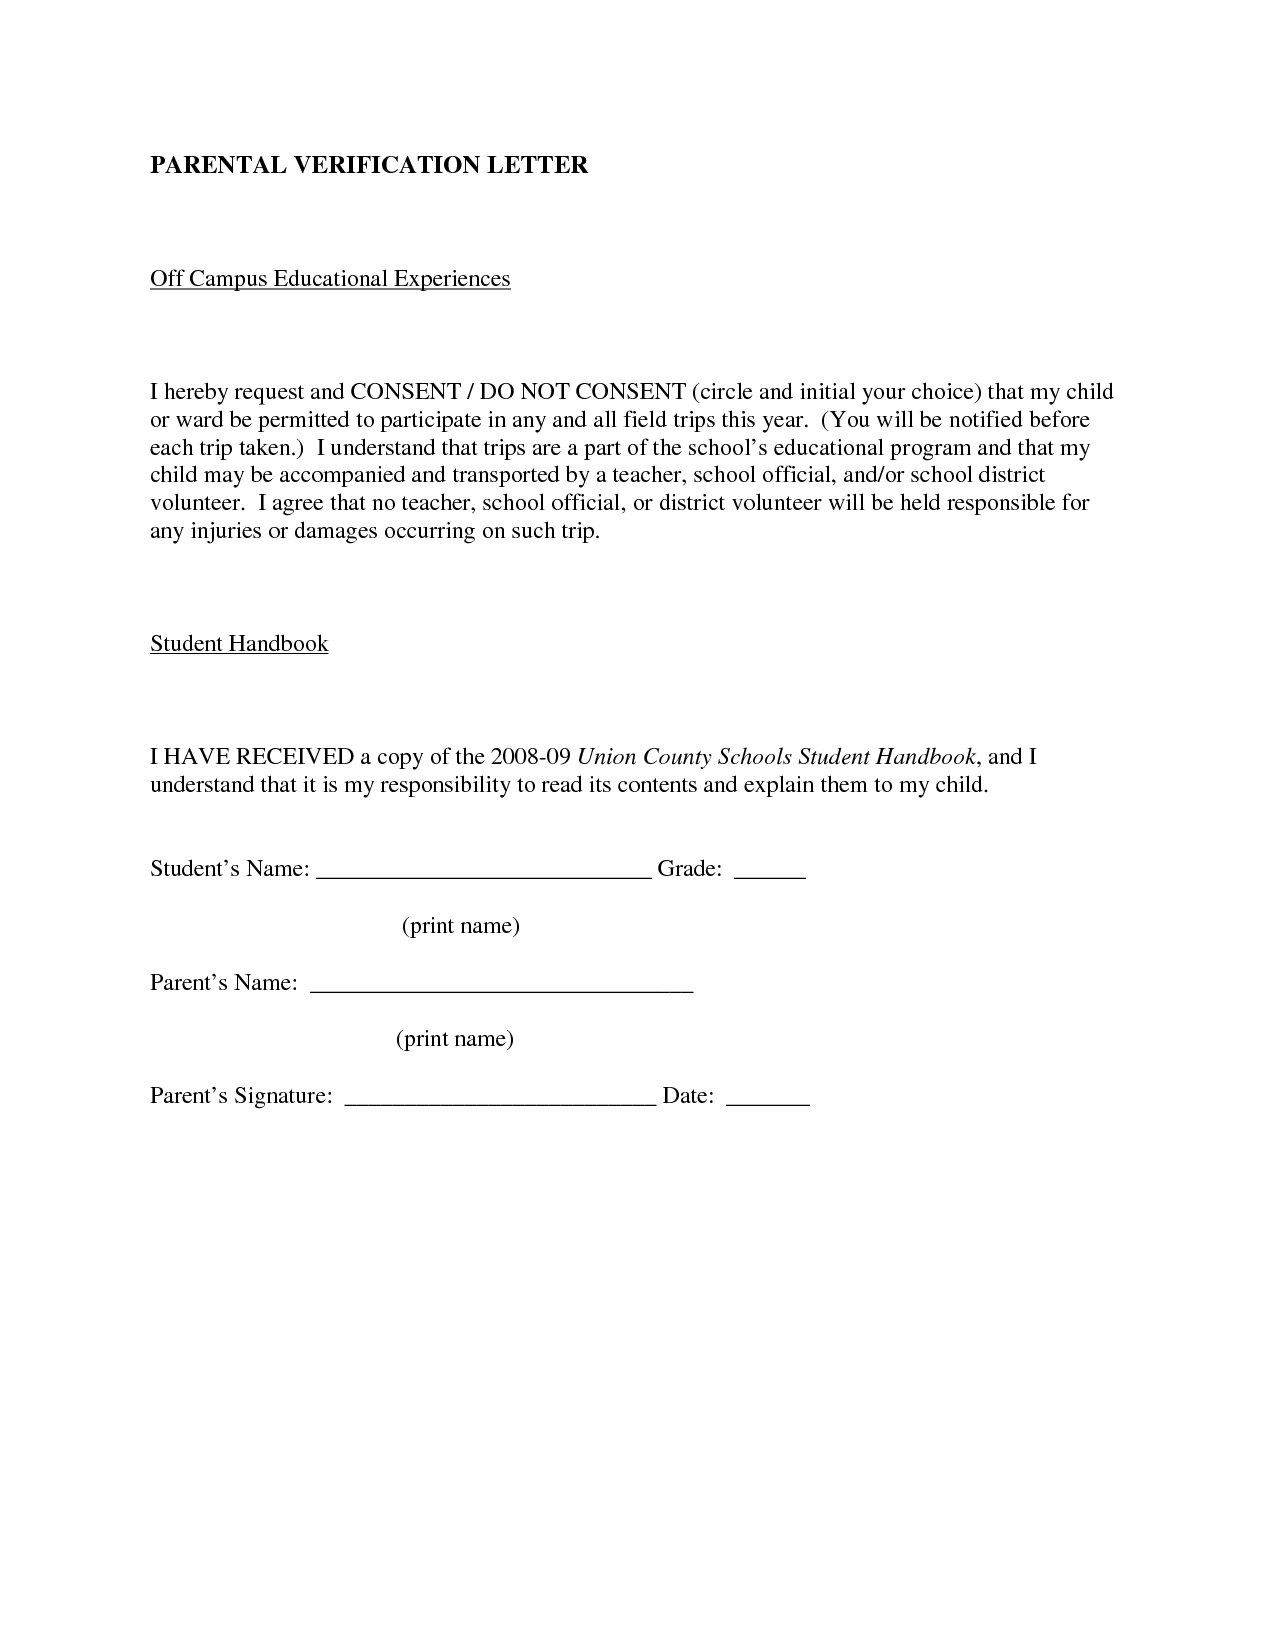 verification letter of volunteering steven blogvolunteer letter template application letter sample